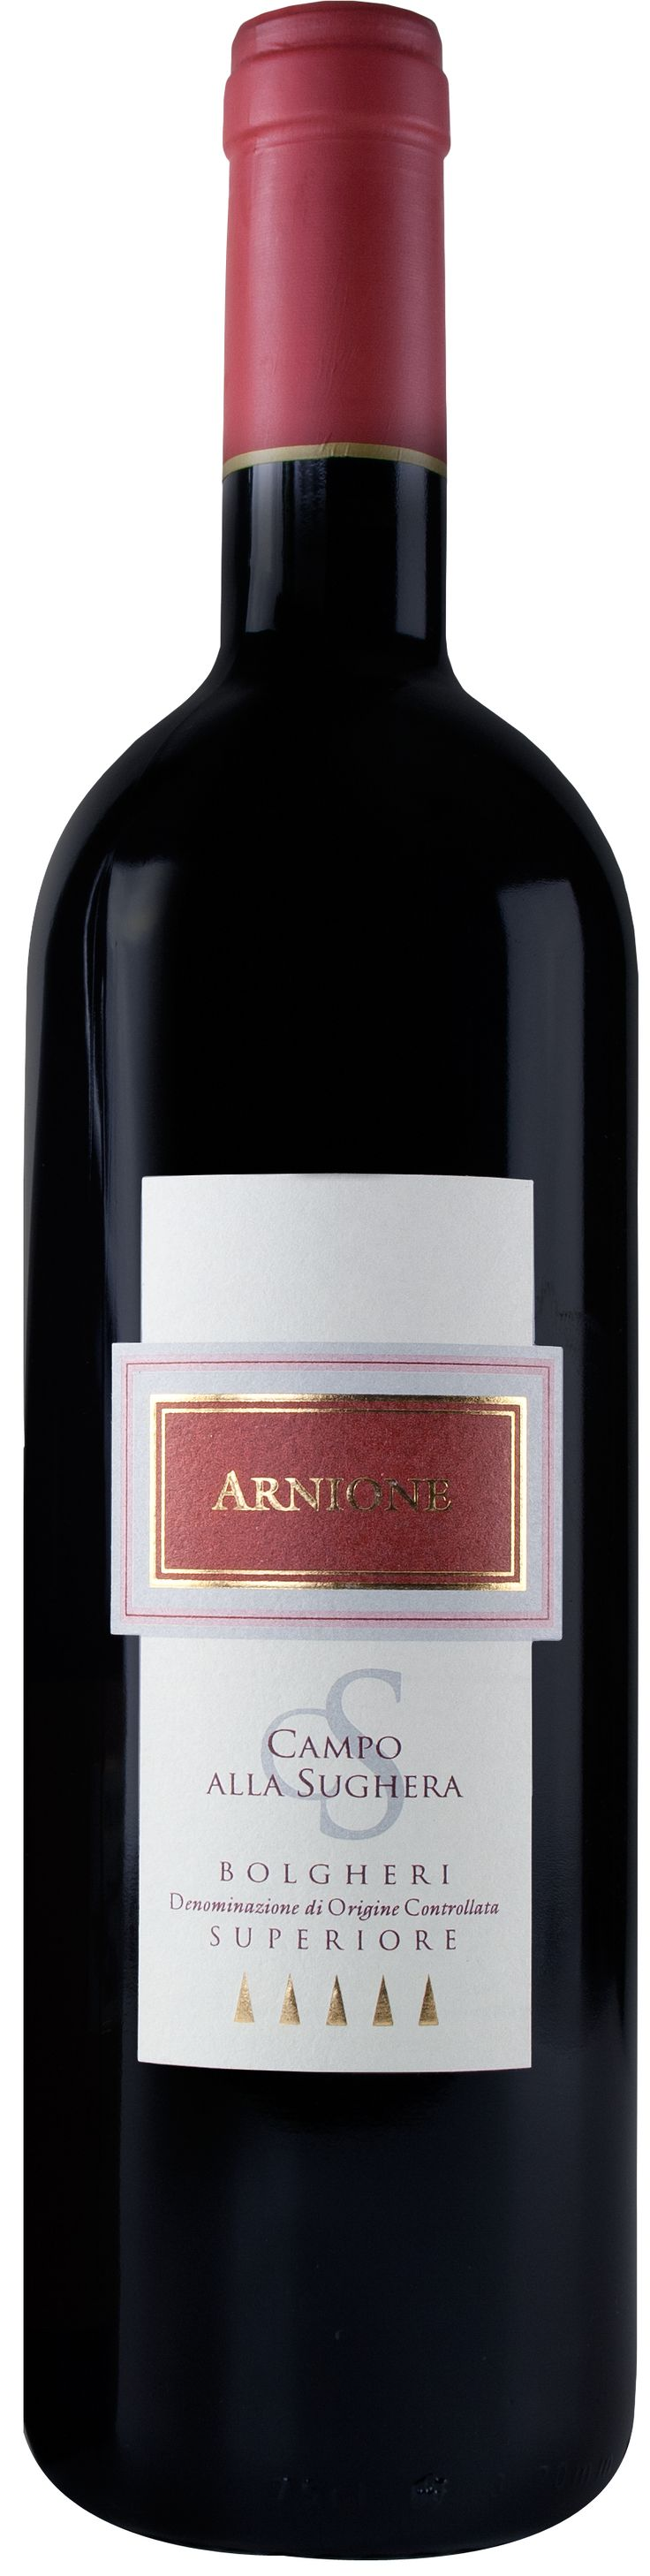 A blend of Cabernet Sauvignon, Cabernet Franc, Merlot and Petit Verdot, this shows a dark, masculine personality, and it offers bitter chocolate, dark cherry, blackberry, rum cake, leather and black licorice notes. Dark fruit on the palate is backed by well-structured tannins, which suggest impressive longevity.